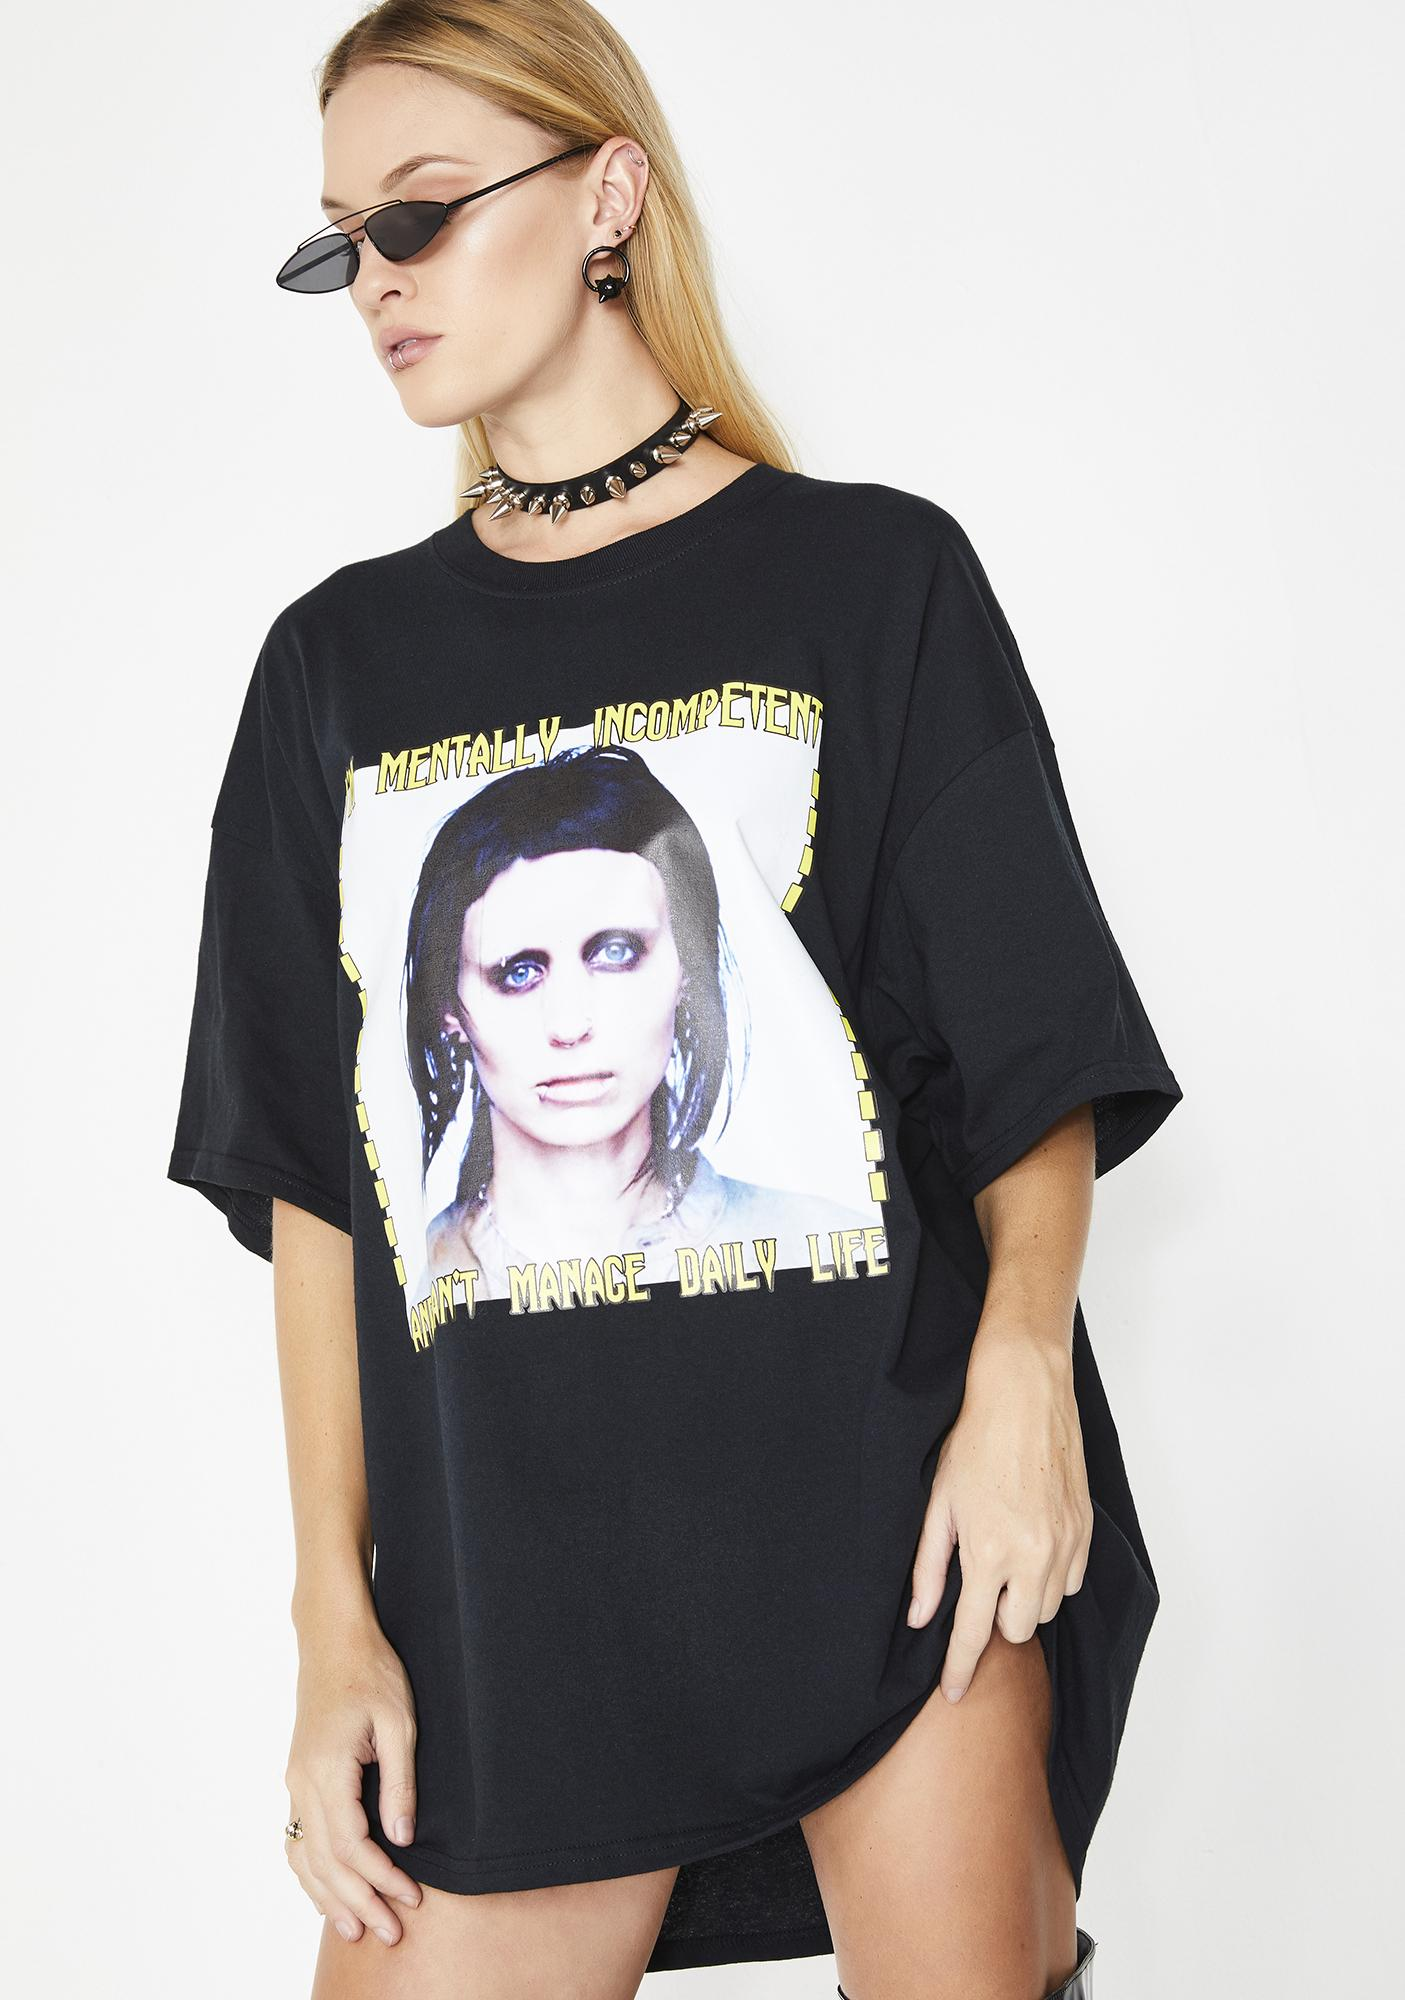 NYCXPARYS Mentally Incompetent Tee